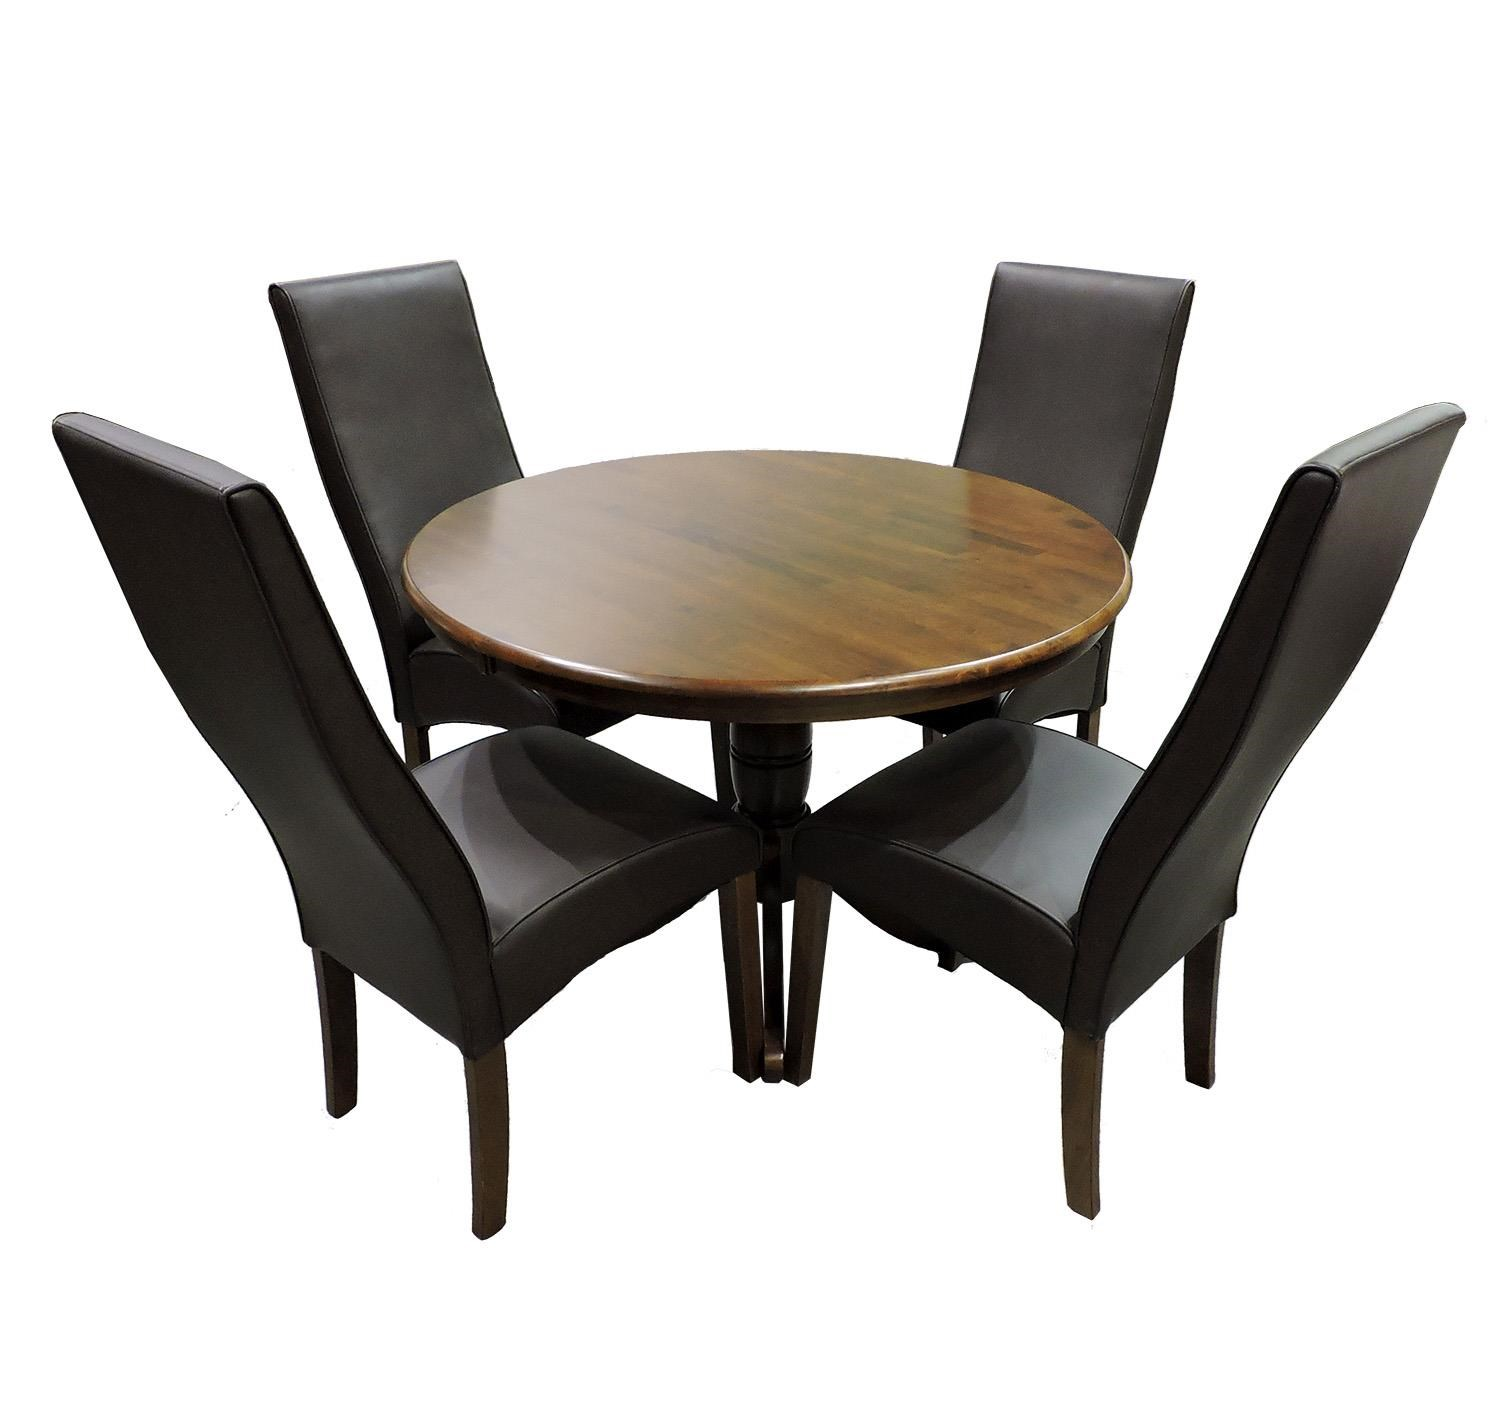 Whitewood Dining Set 5 Piece Dining Set - Item Number: T581-42-RT